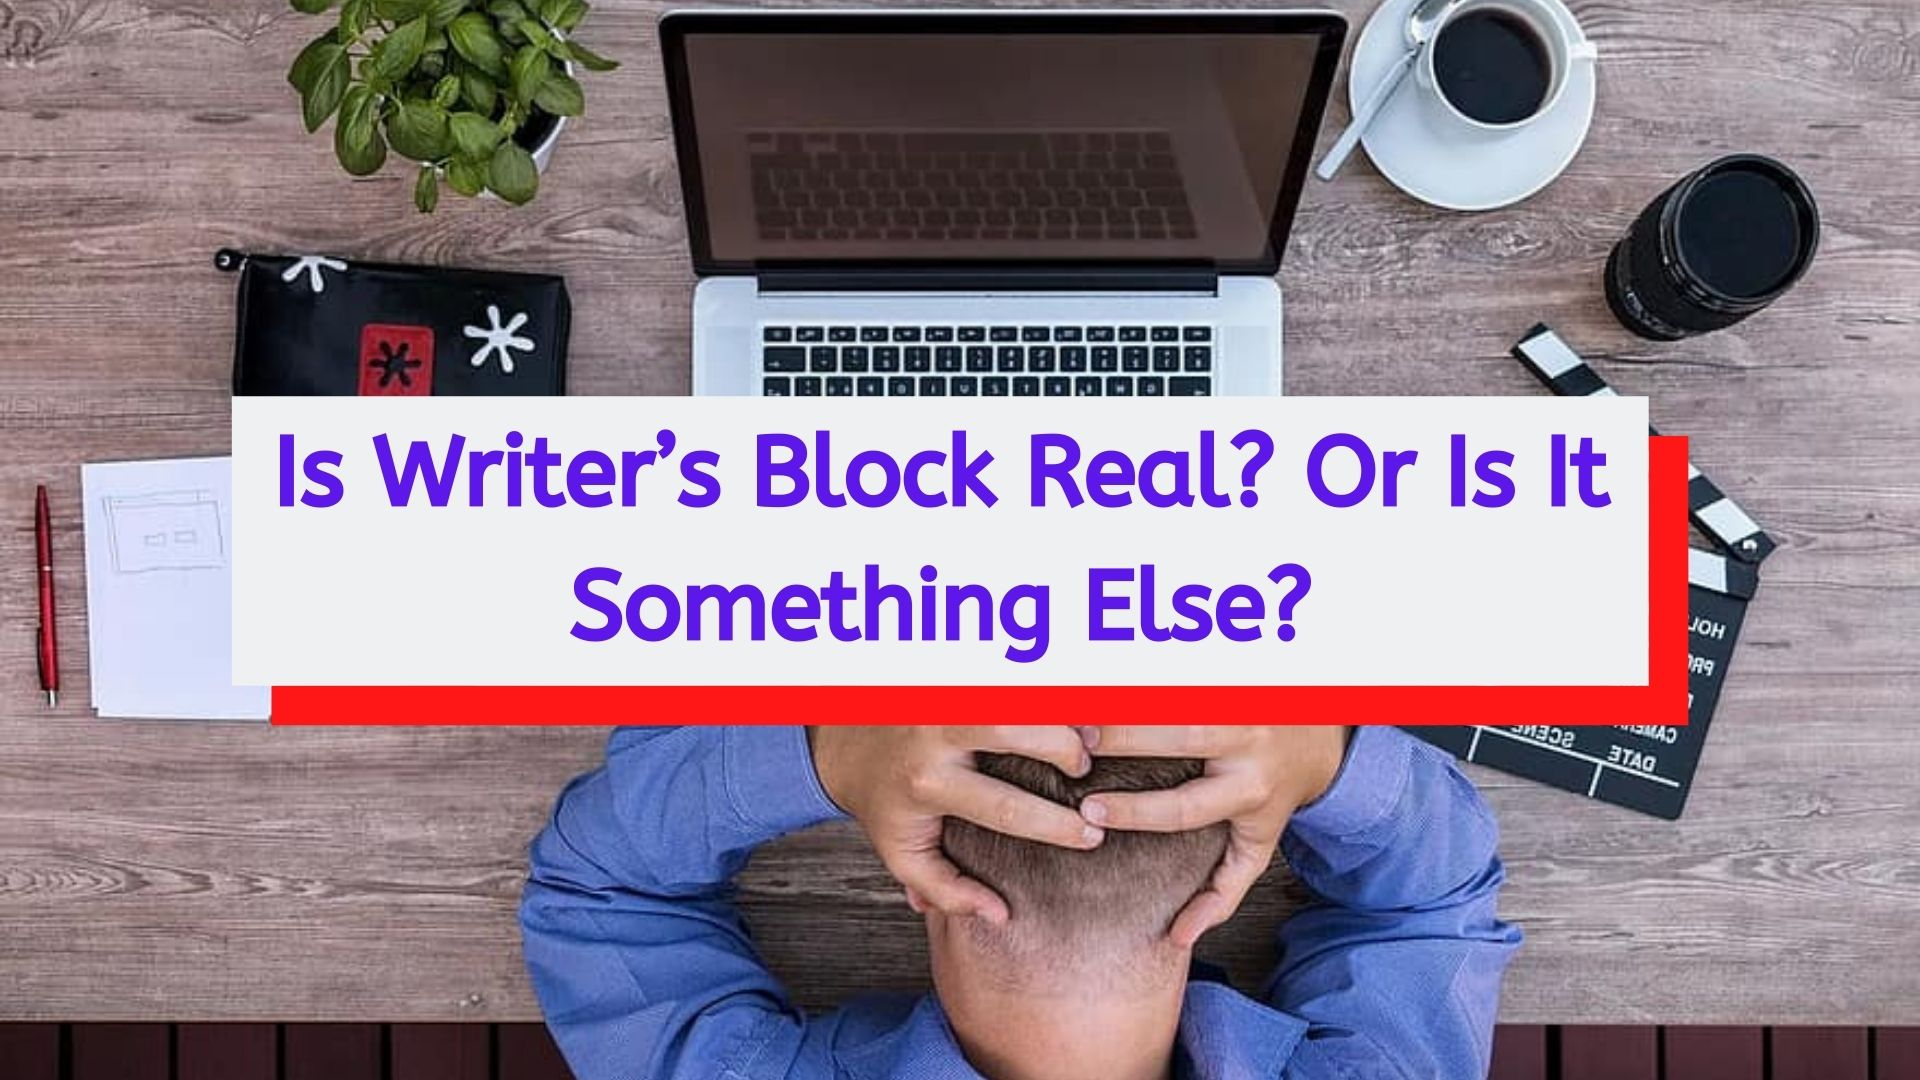 is writer's block real